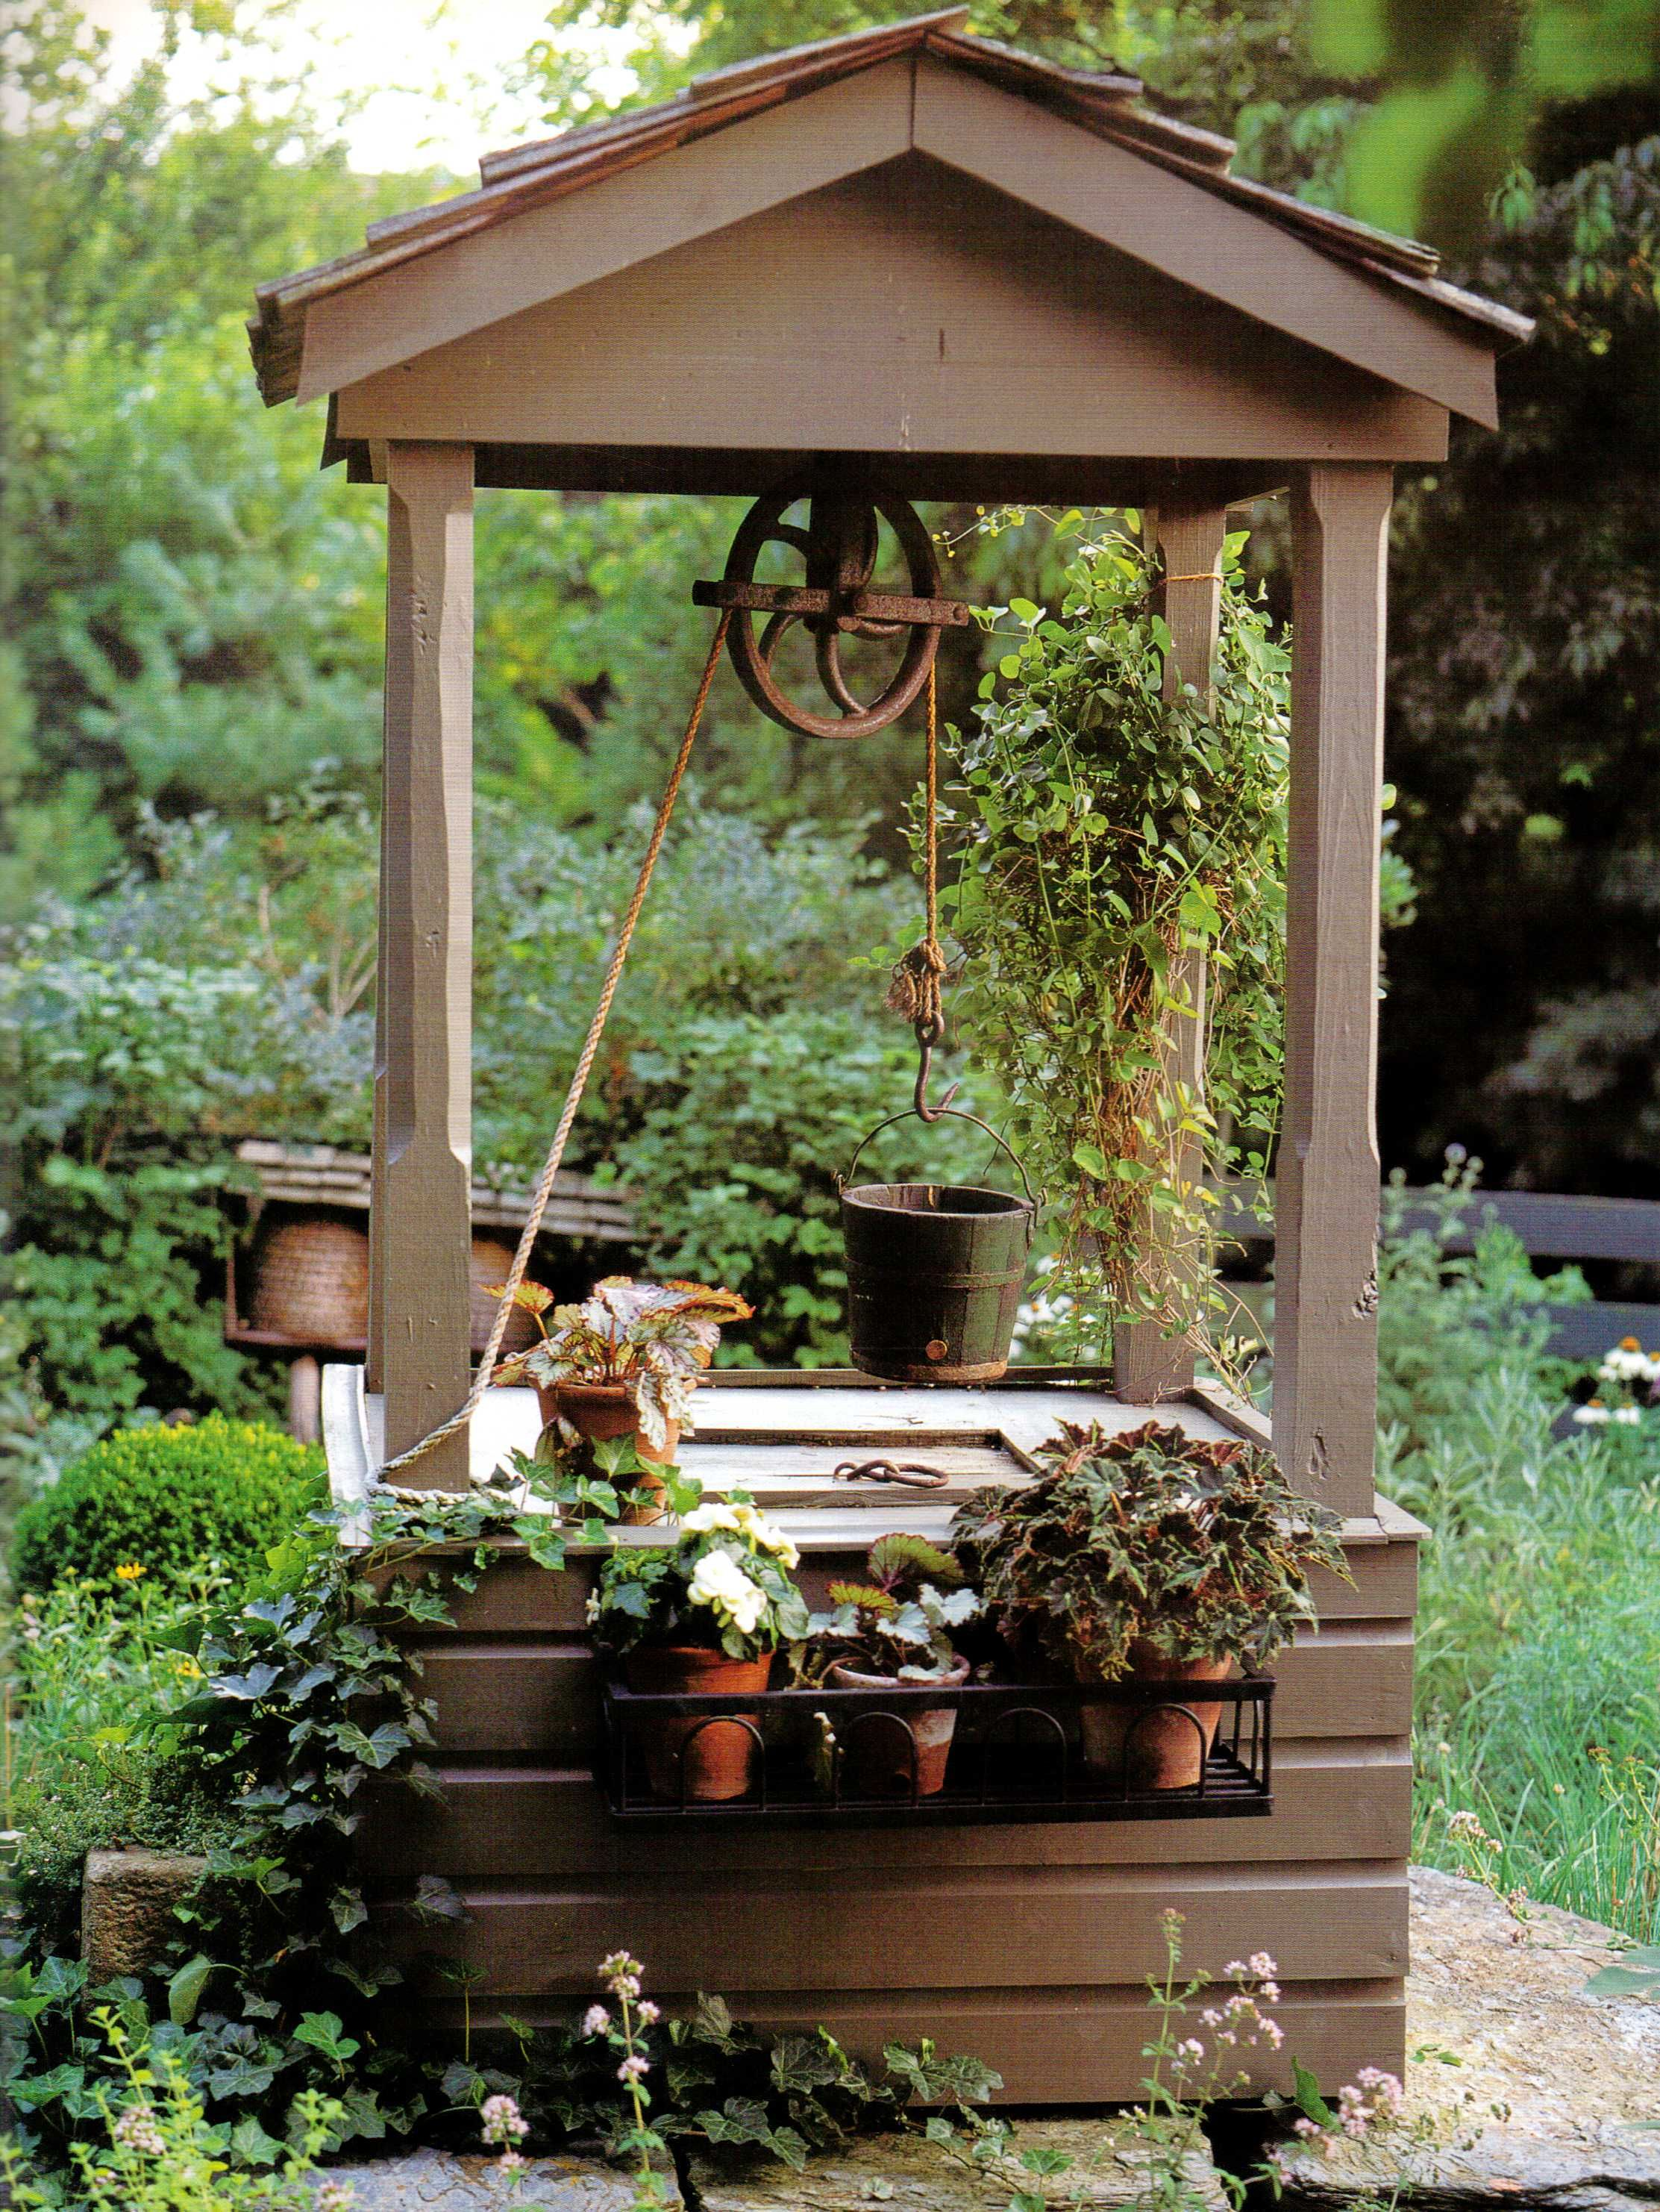 Garden designs with bridges and wishing wells landscaping ideas - Very Cool Old Fashioned Well